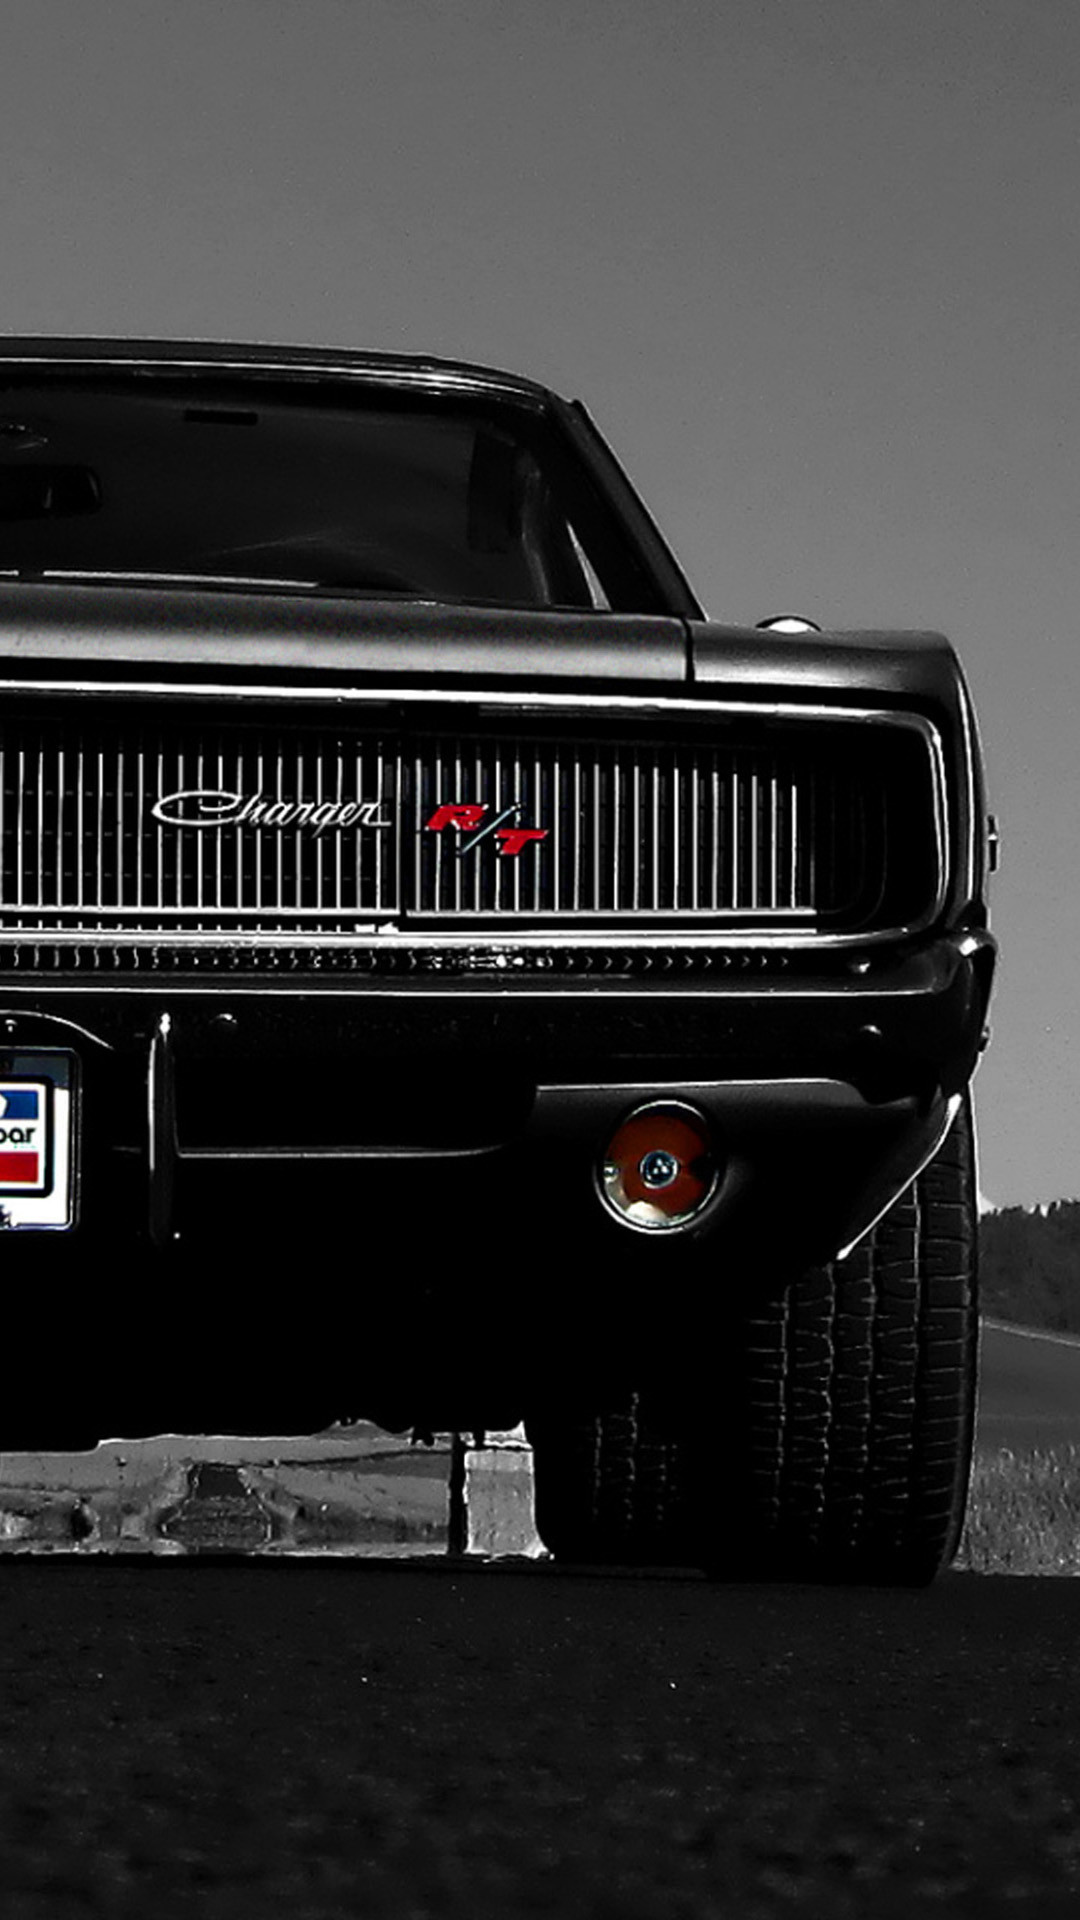 Charger Rt Dodge Charger R T Dodge Black Tires Muscle: 1970 Dodge Charger Wallpaper HD (76+ Images